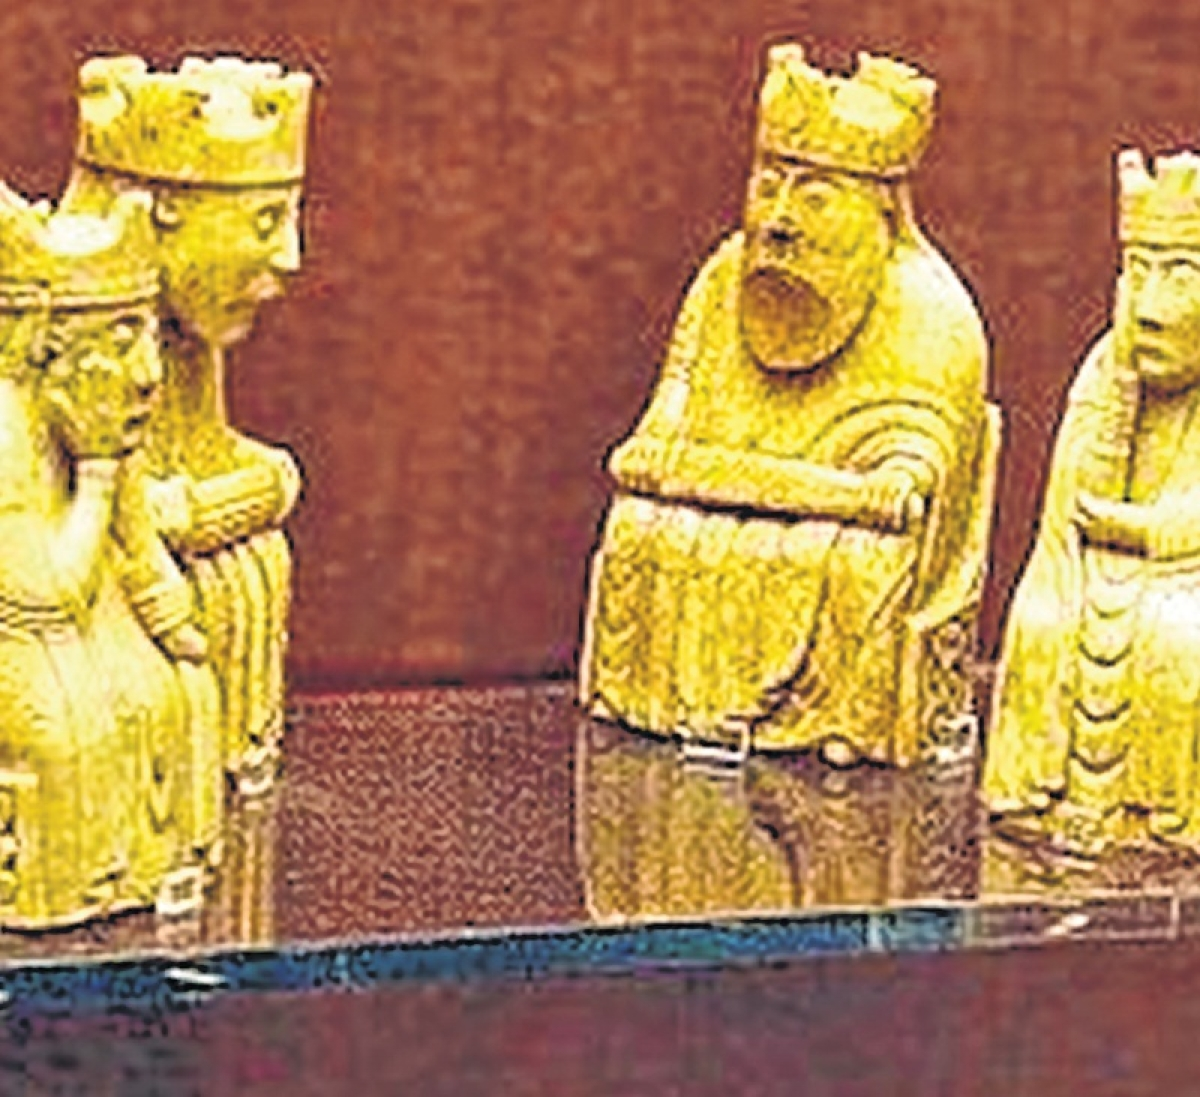 Lost and found Lewis Chessman